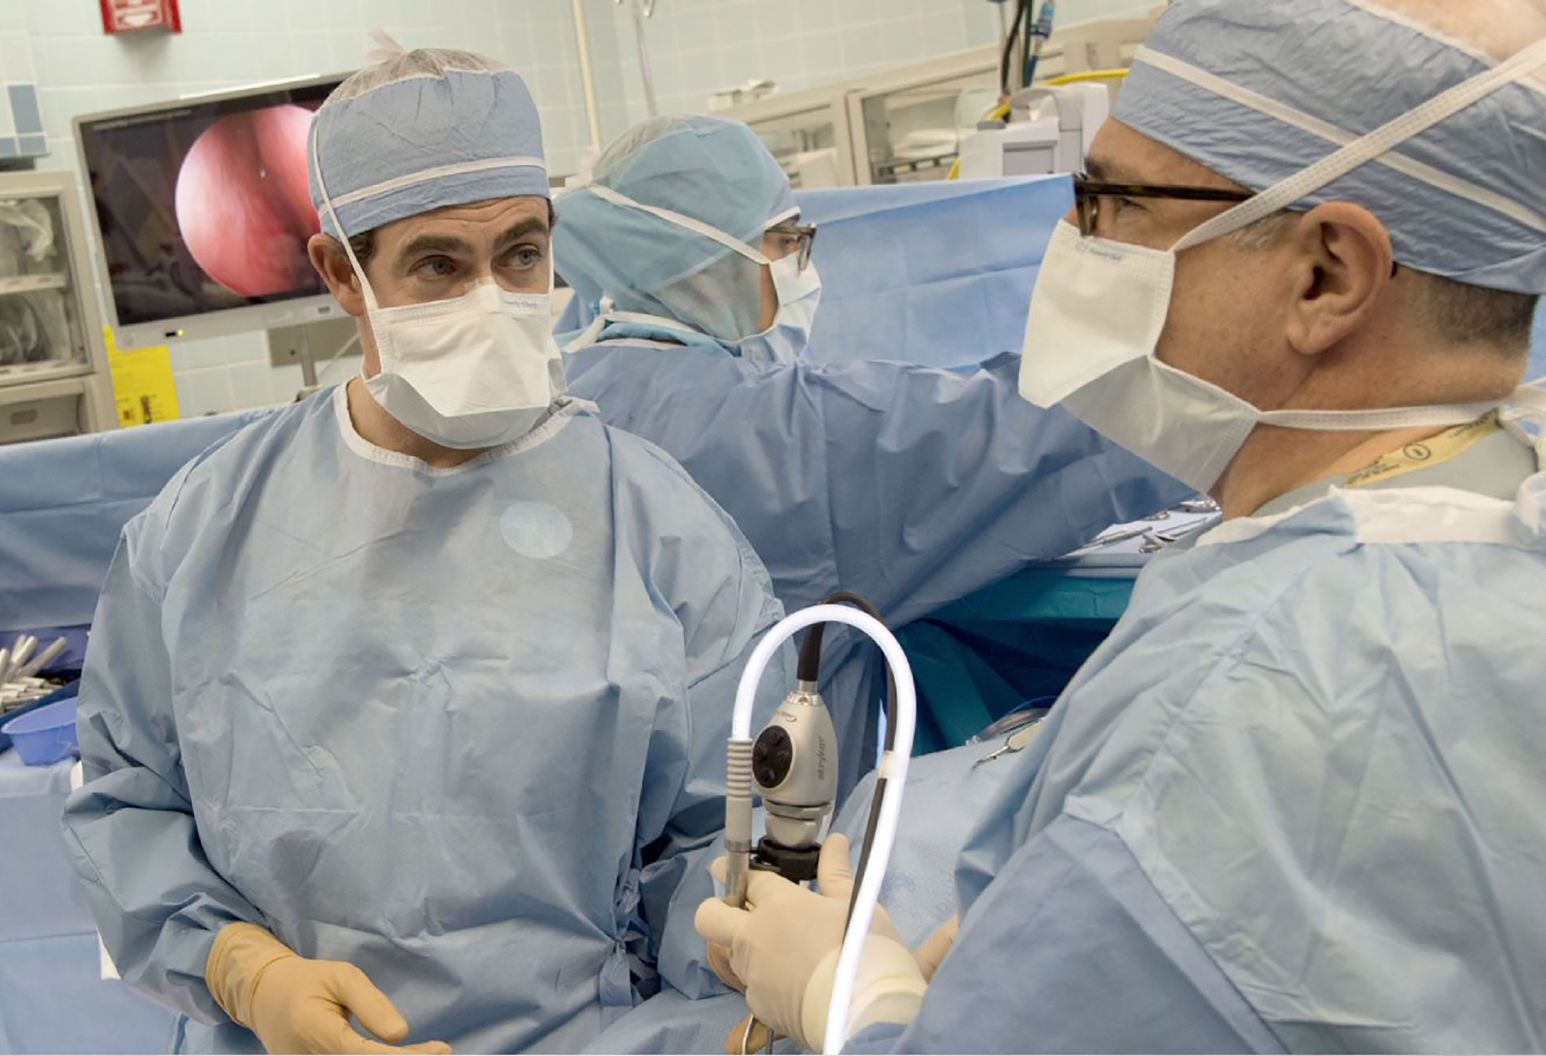 Three surgeons are performing surgery in an operating room